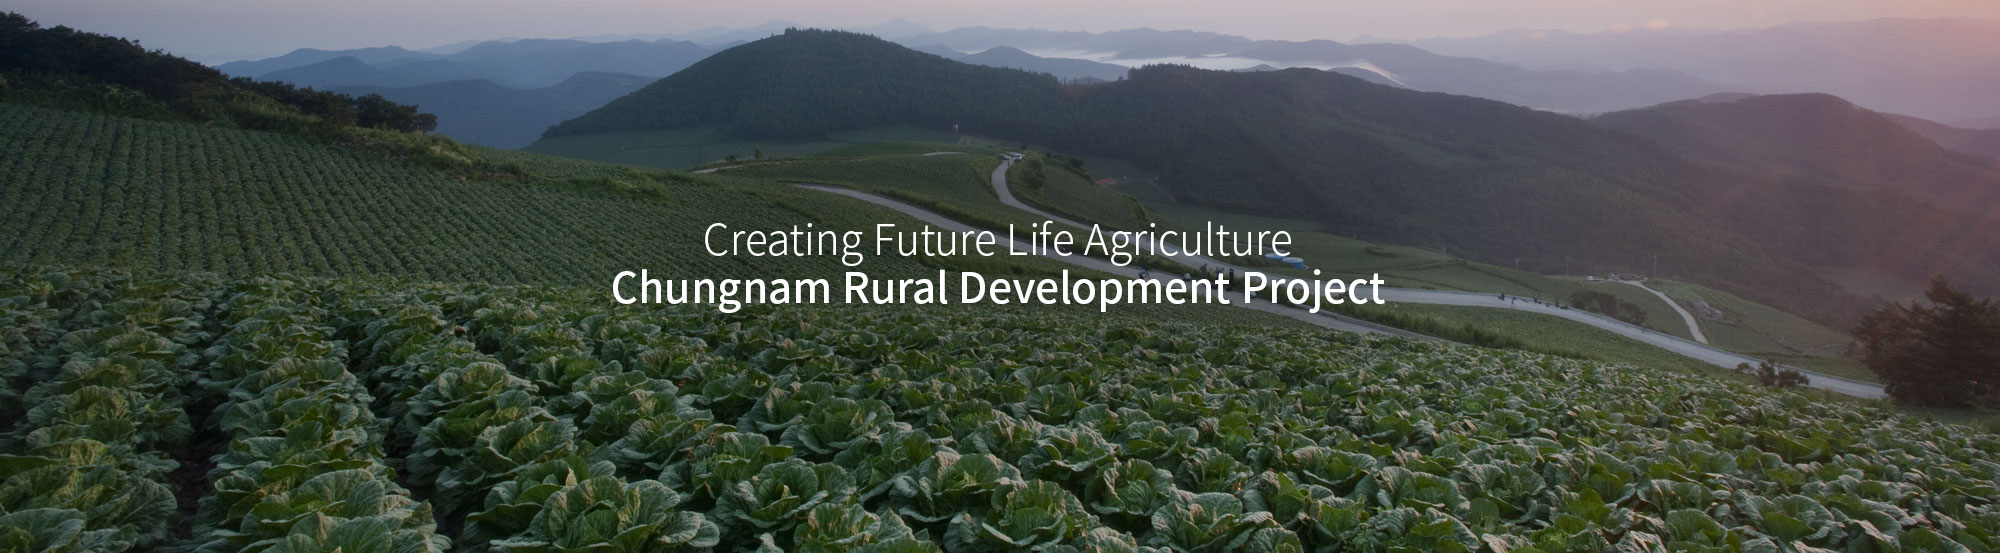 Creating Future Life Agriculture Chungnam Rural Development Project